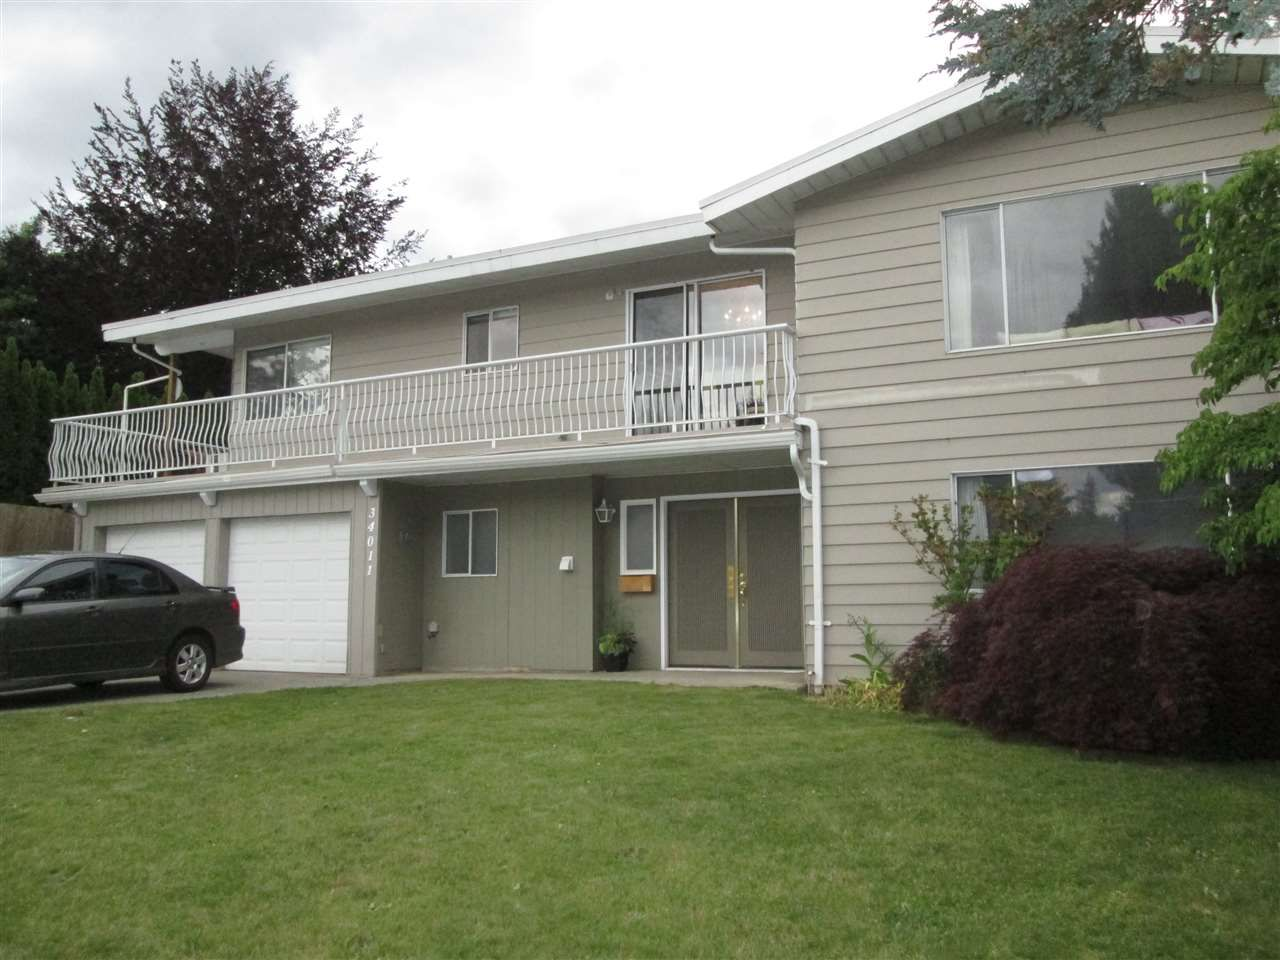 Main Photo: 34011 SHANNON Drive in Abbotsford: Central Abbotsford House for sale : MLS®# R2177798